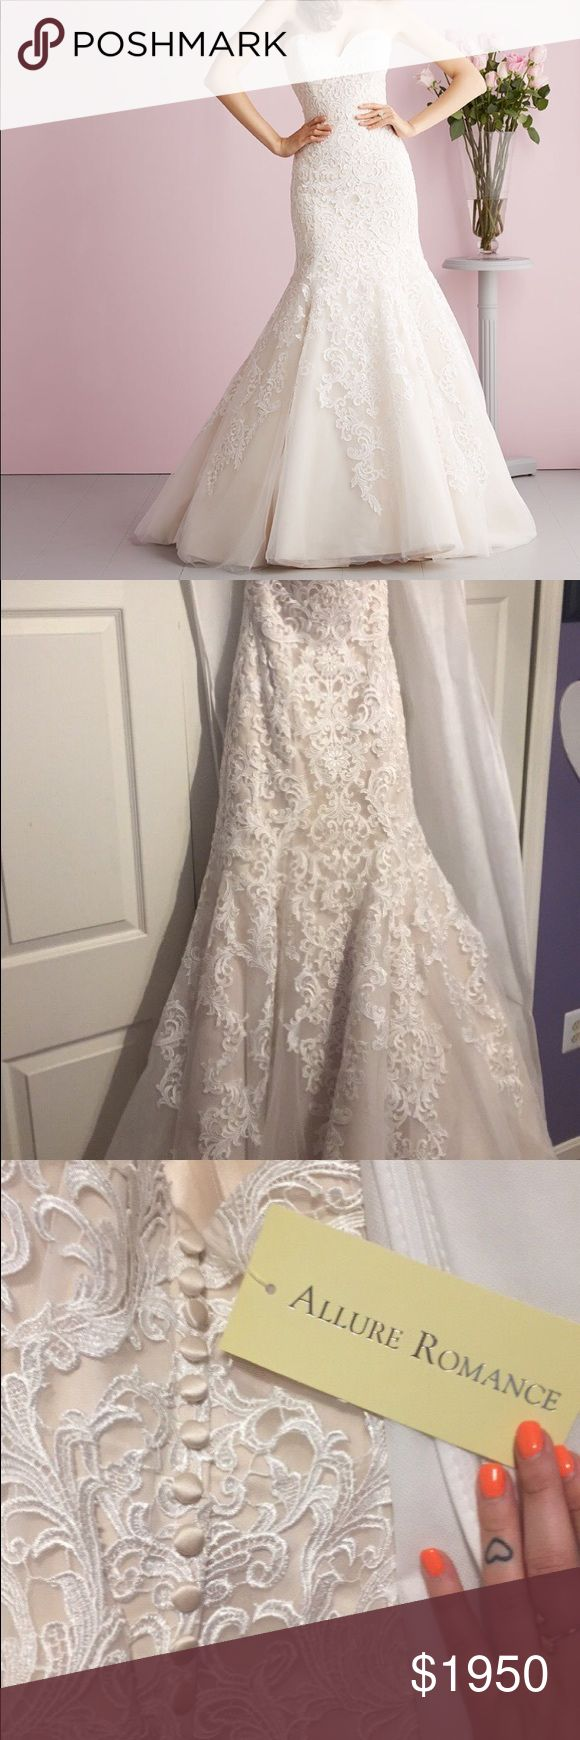 Allure Romance Wedding Gown Style: 2709 Color- Ivory/ Champagne Mermaid Style.  Never worn, never altered, never even tried on.  Size 8 Allure Bridals Dresses Wedding